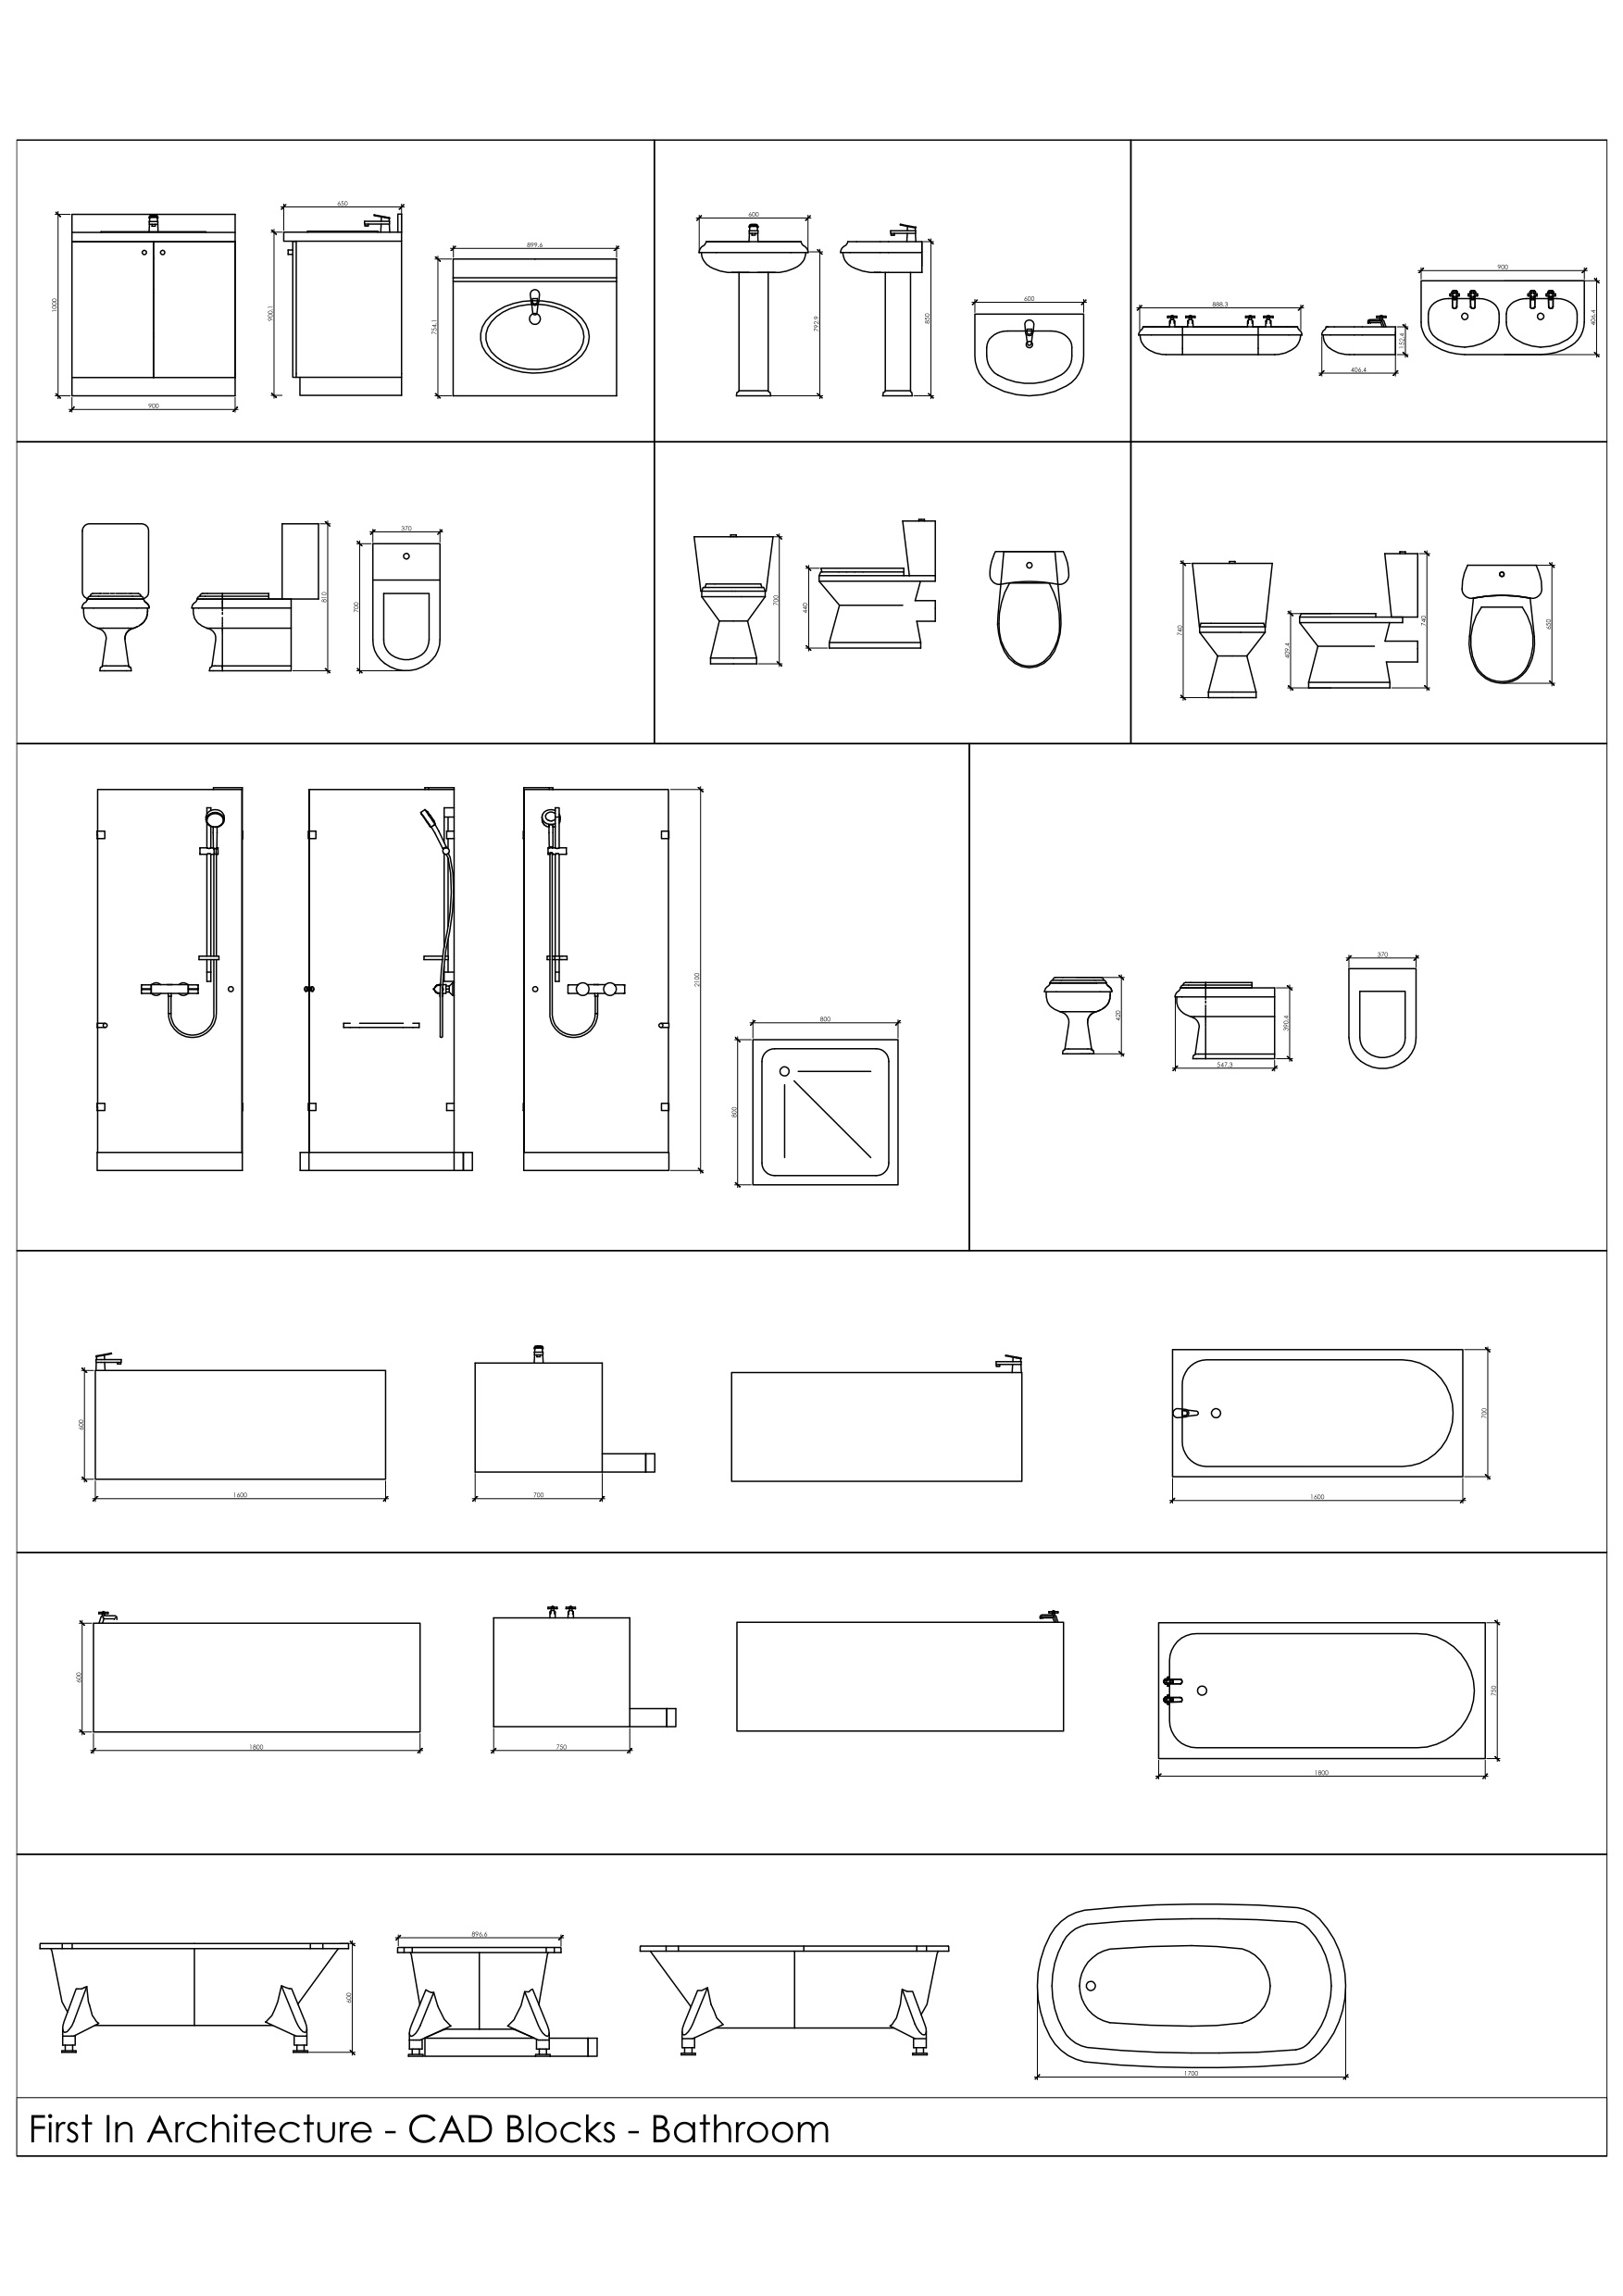 Free Cad Blocks Bathroom